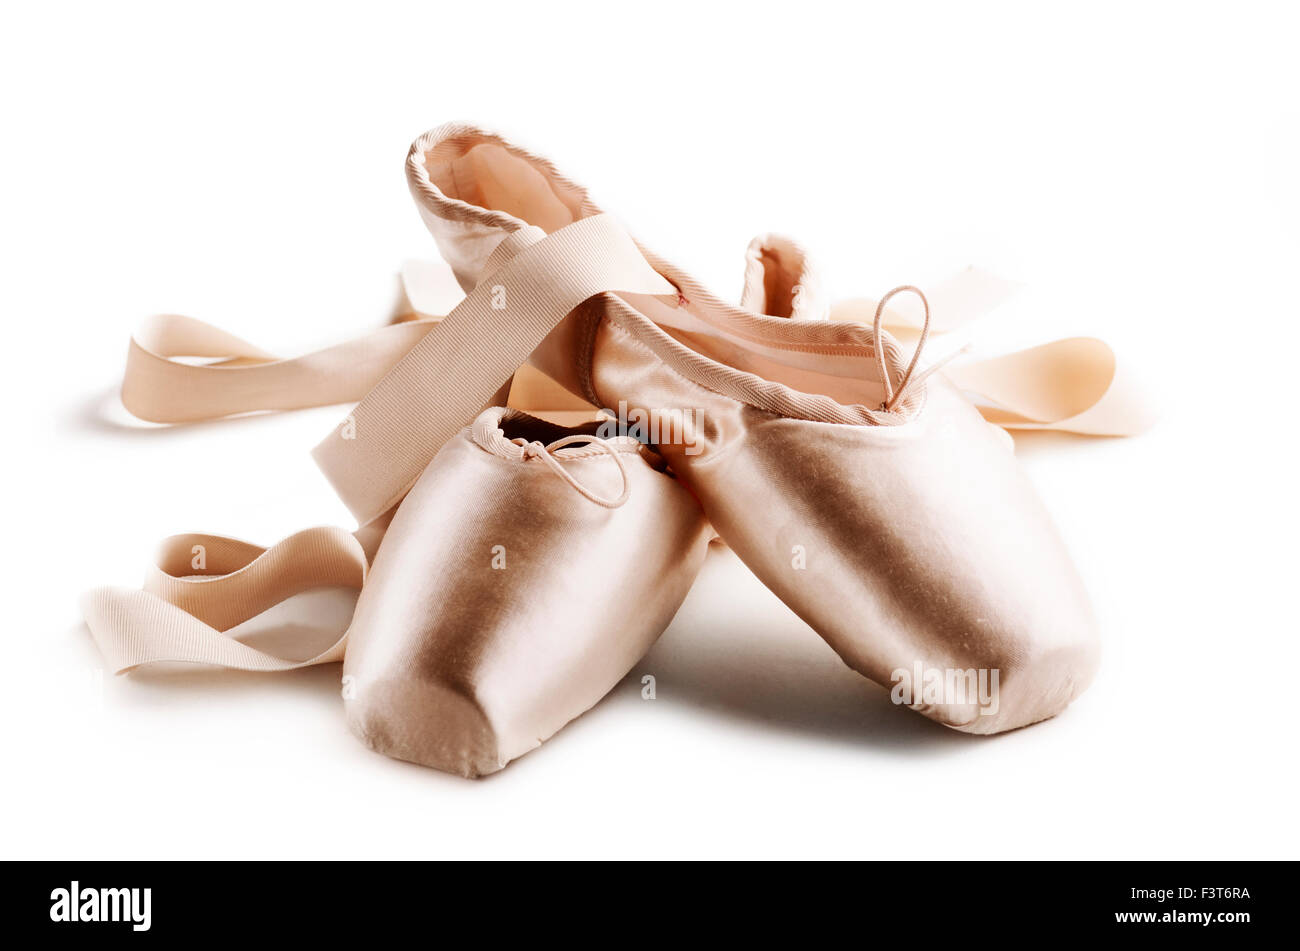 Pointe shoes isolated over white background - Stock Image